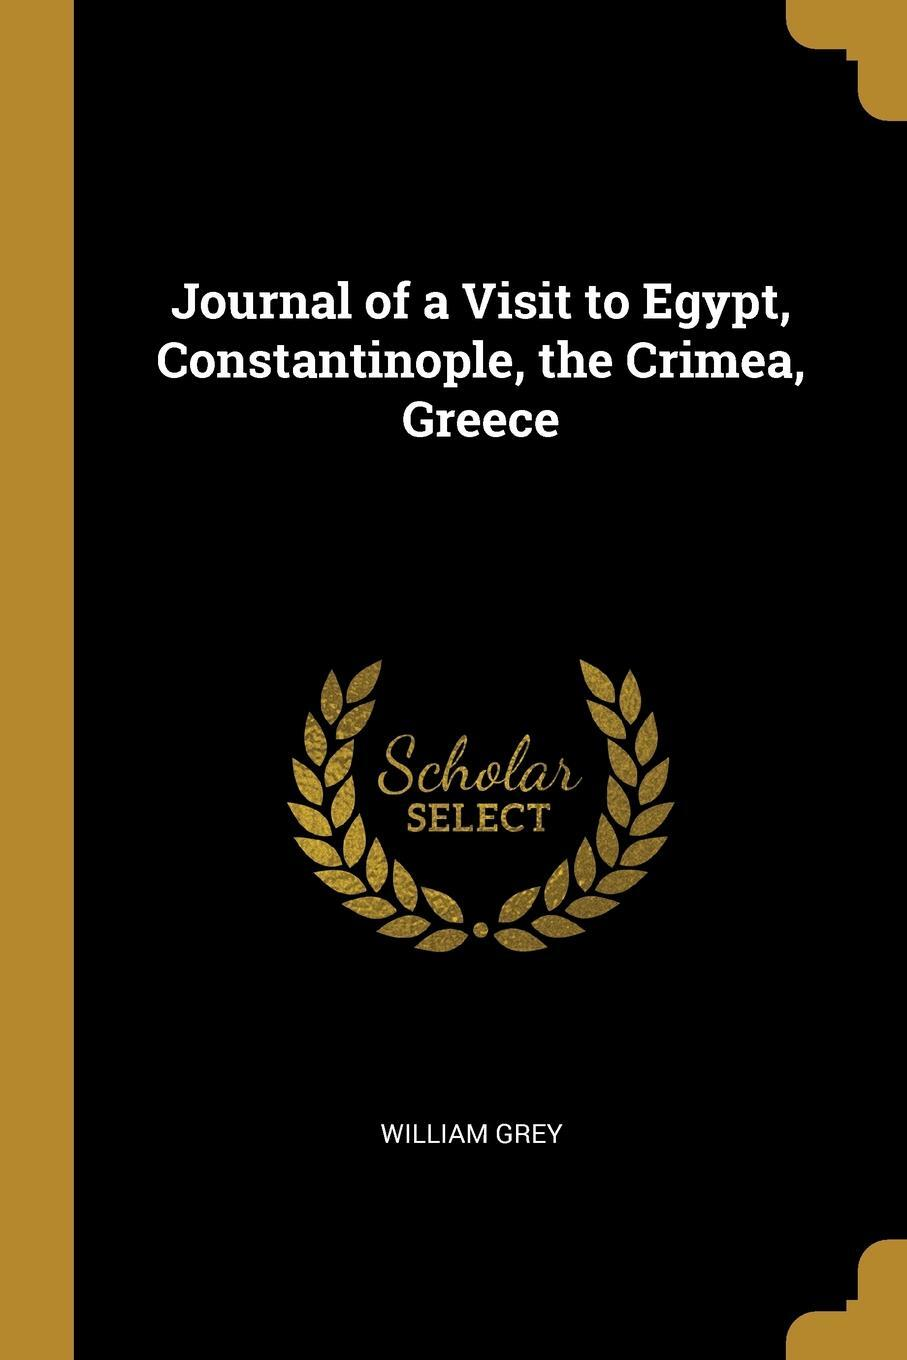 Journal of a Visit to Egypt, Constantinople, the Crimea, Greece. William Grey